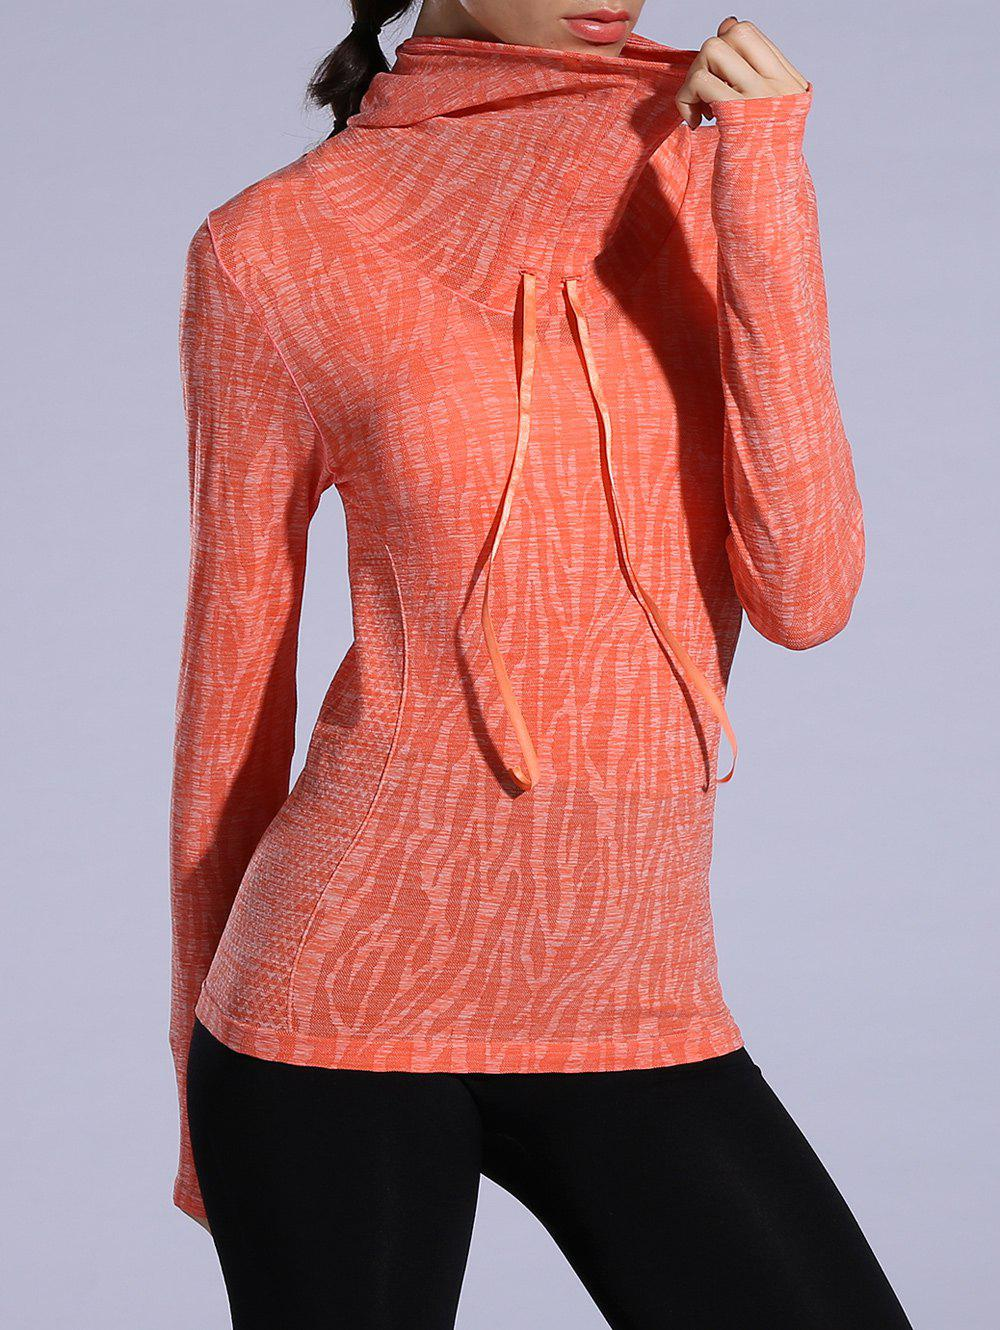 Heathered Dry-Quick Drawstring Hoodie - Tangerine L